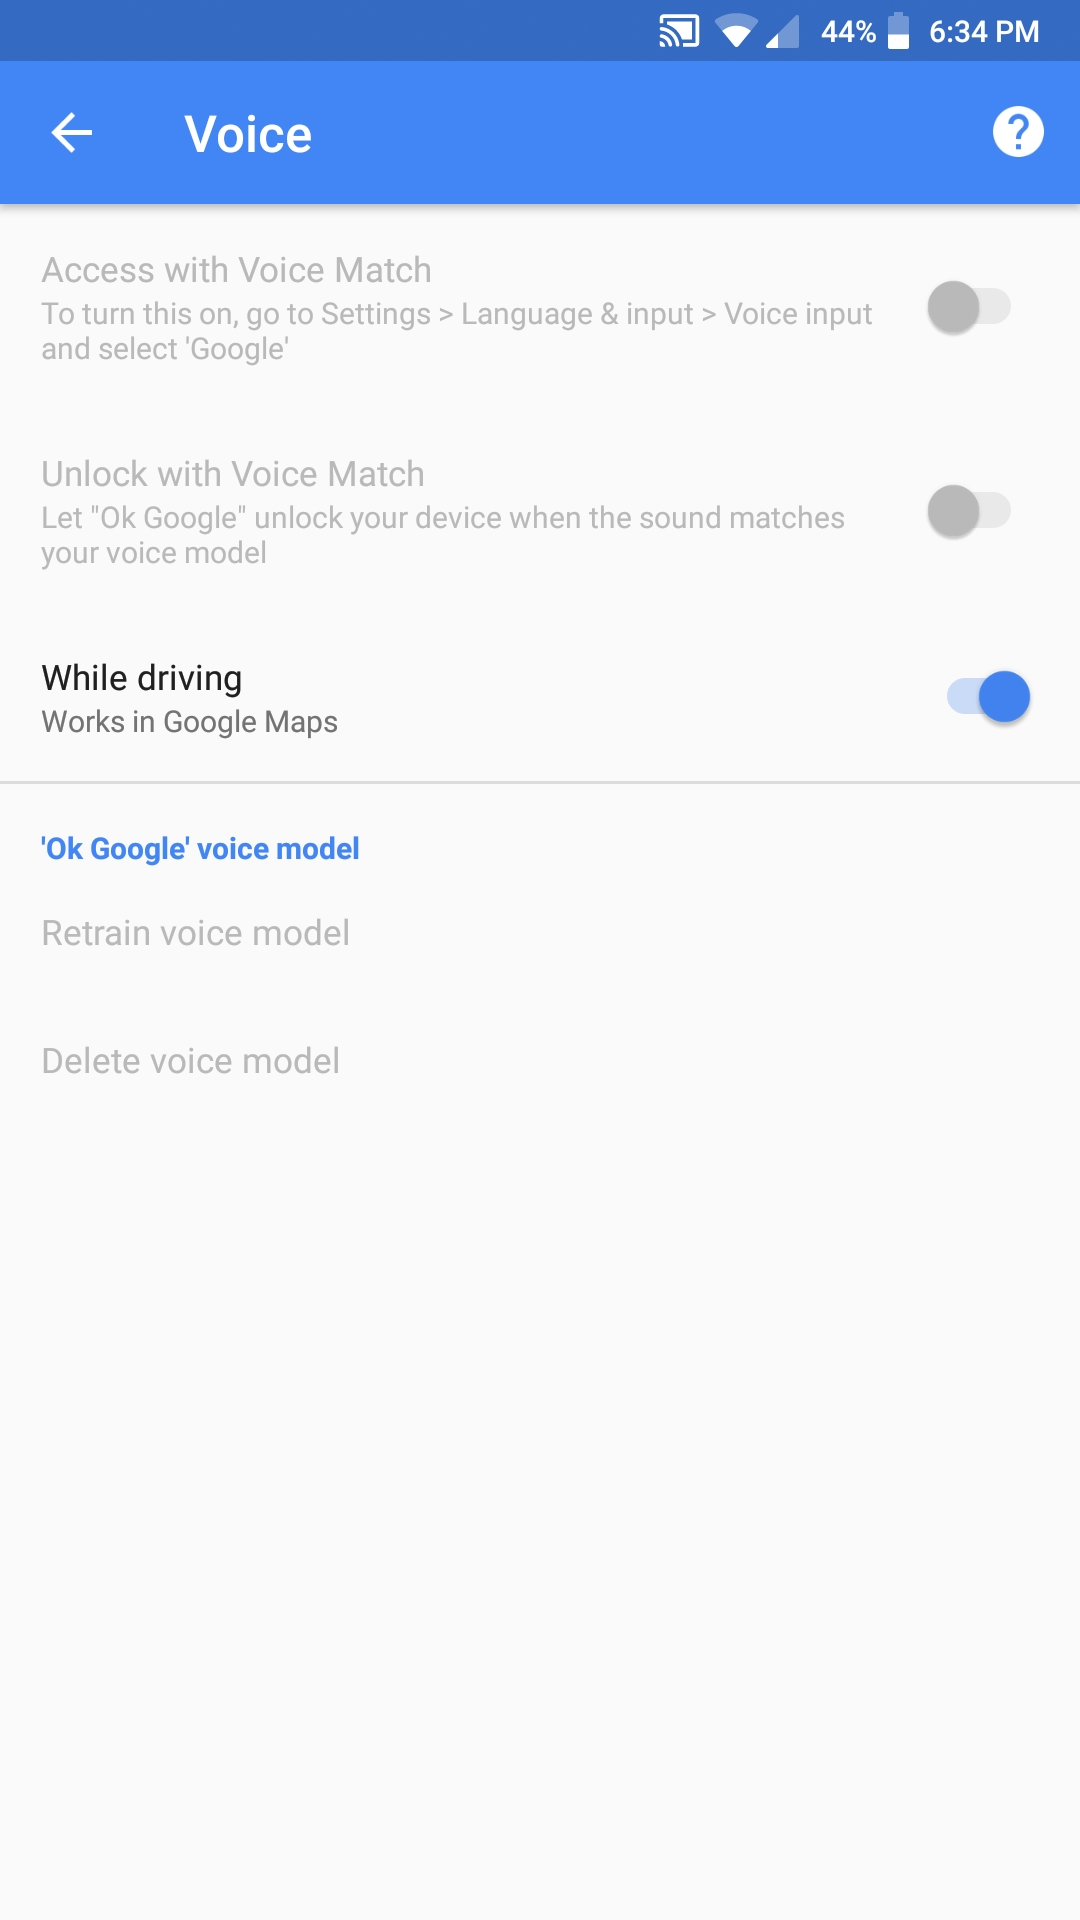 The access with voice match and unlock with voice match options are